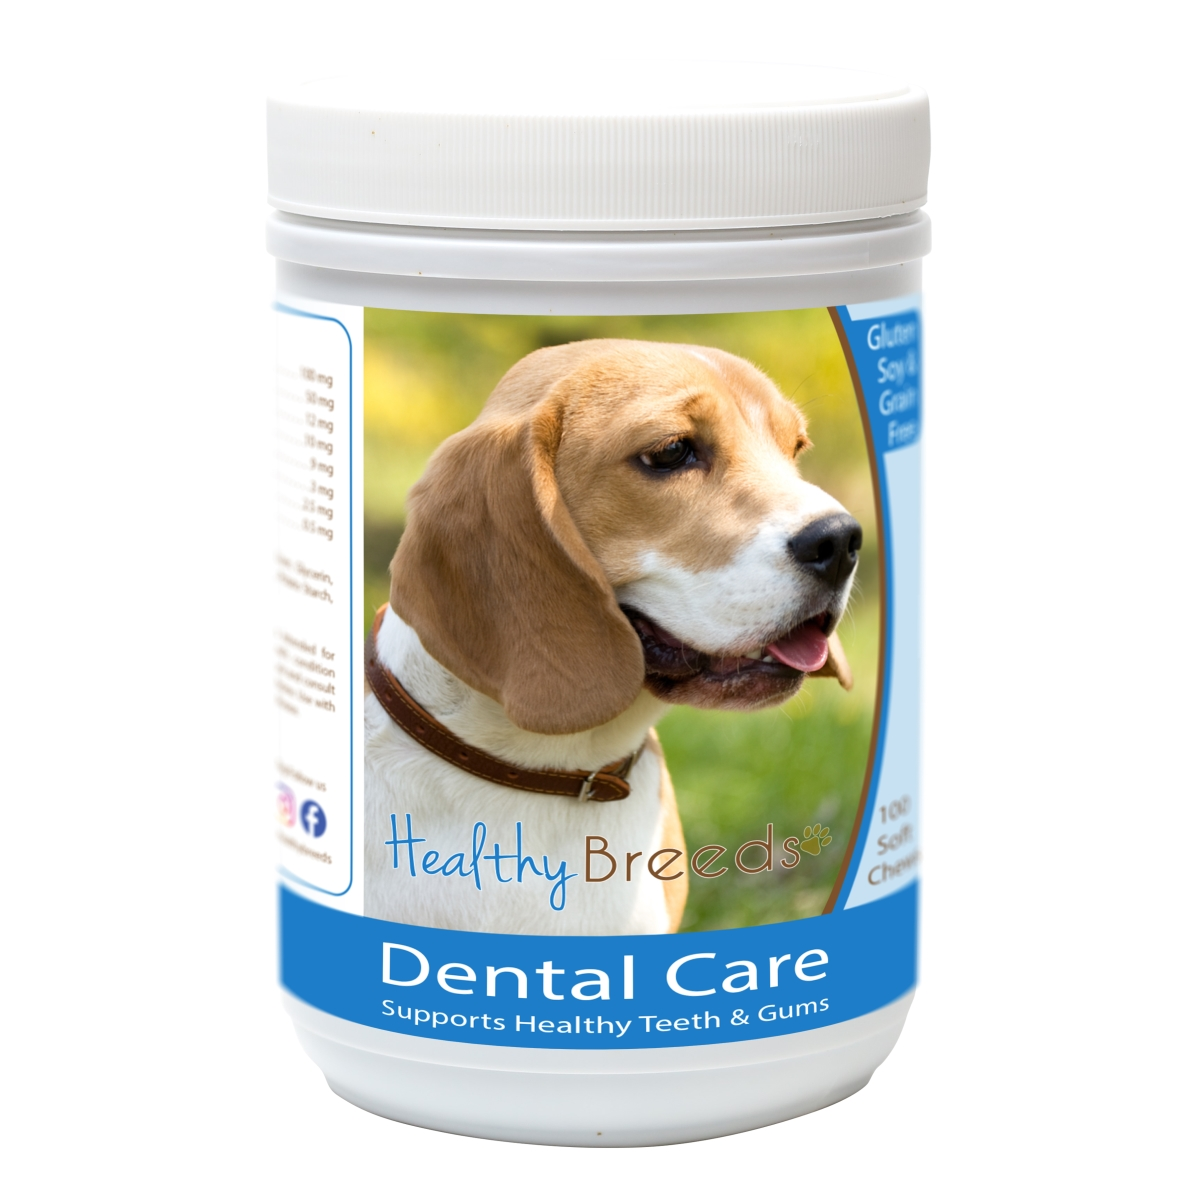 Healthy Breeds 840235162506 Beagle Breath Care Soft Chews for Dogs - 60 Count